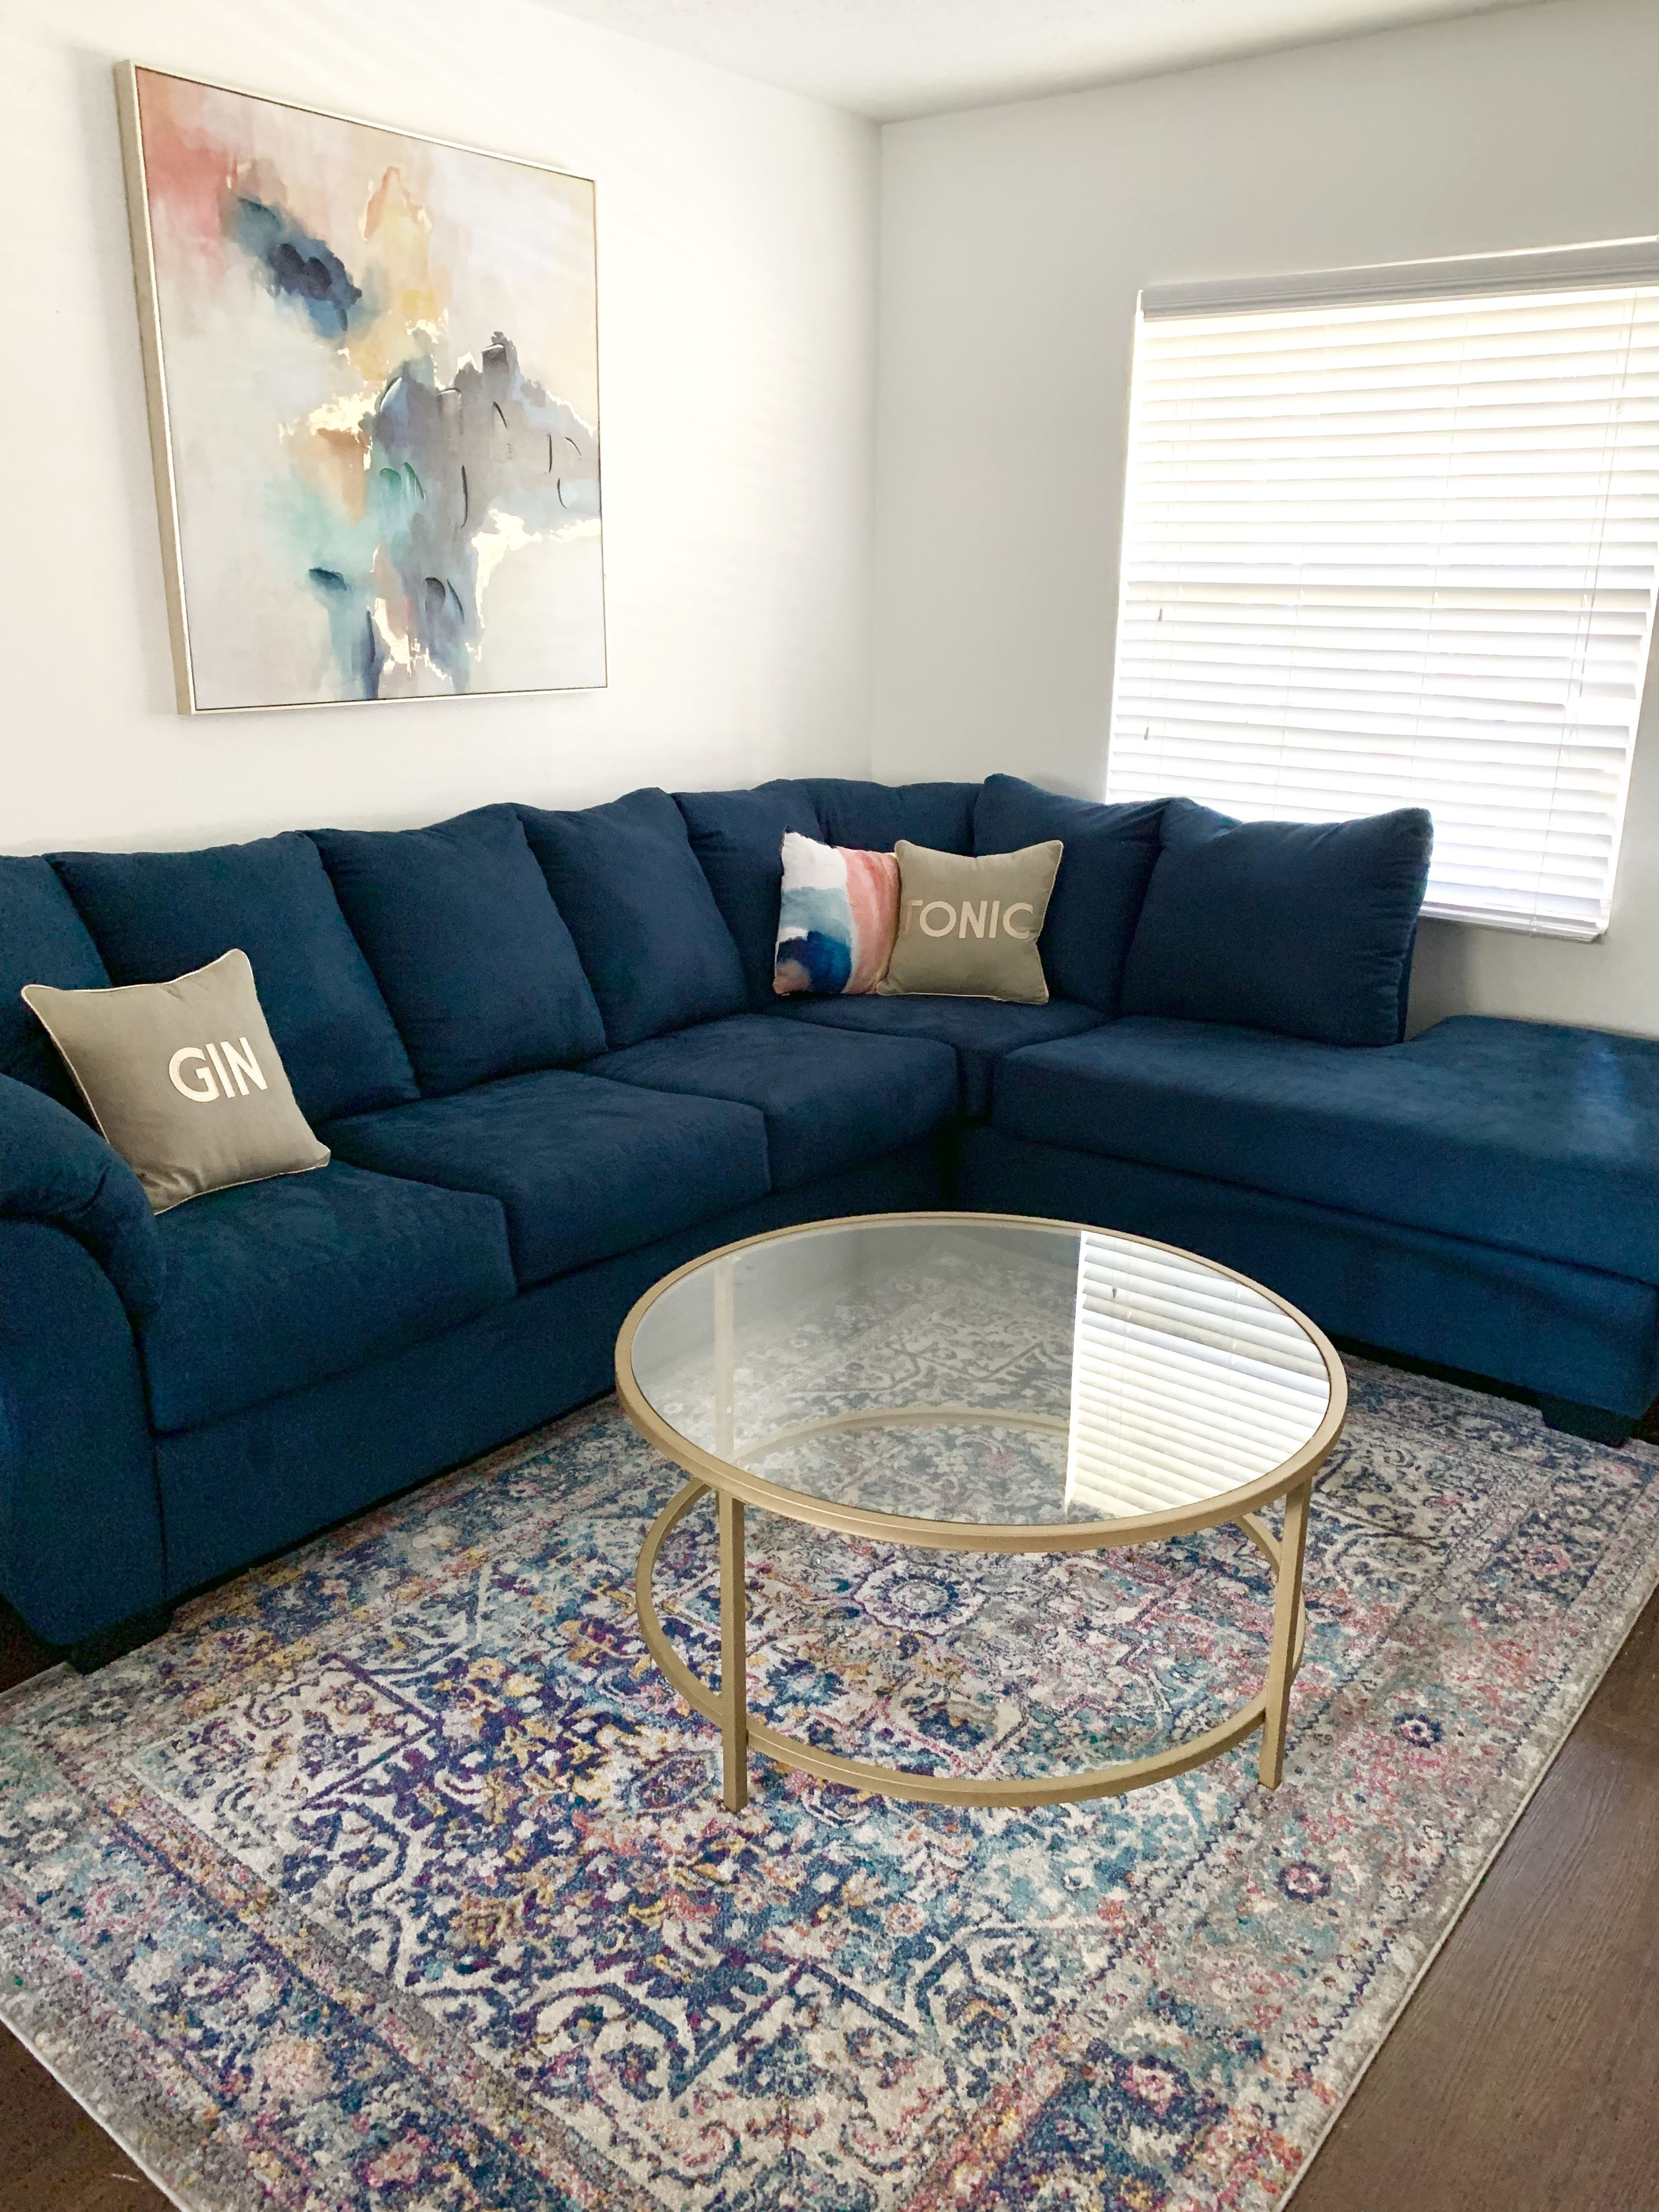 Bachelorette Pad Sectional Living Room Decor Couches Living Room Sectional Blue Sectional Couch